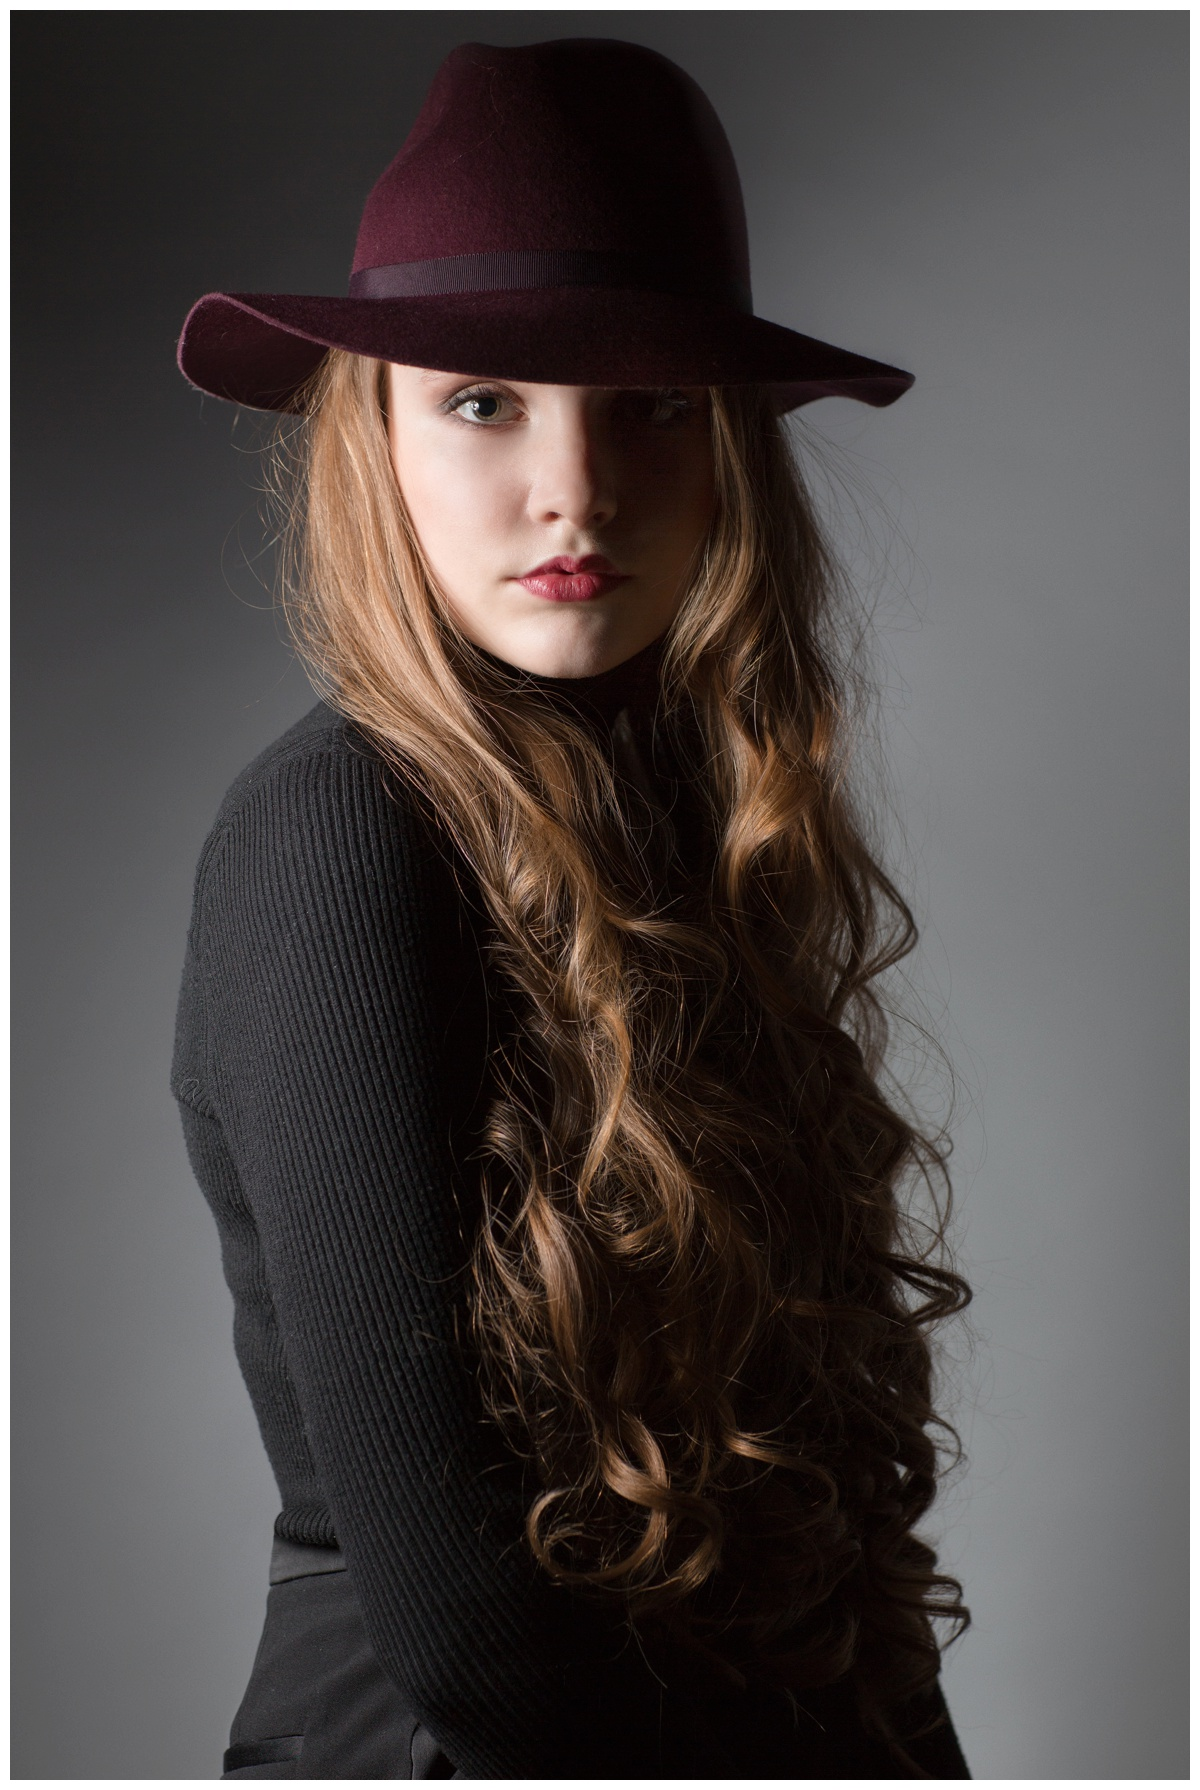 Teen portrait of girl in hat in studio